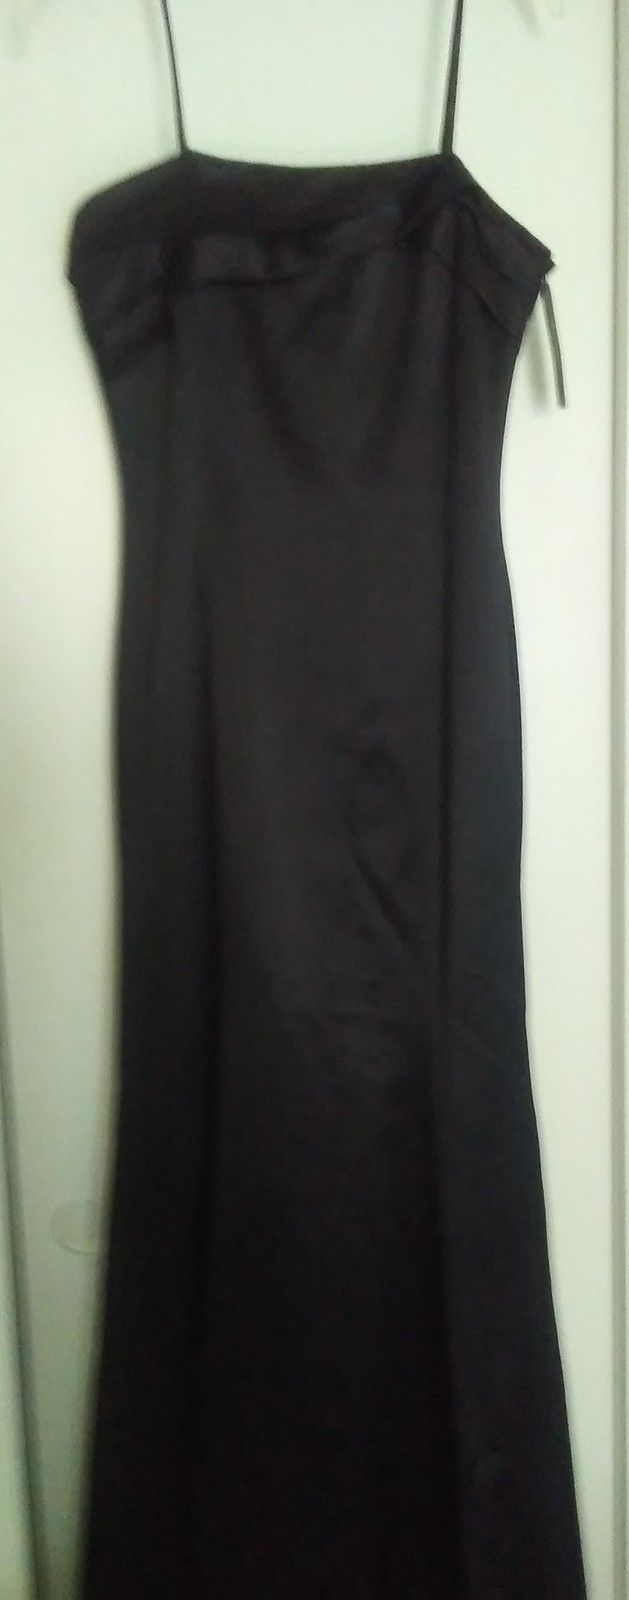 Womens Long Black Dress Formal Gown  Brand Specifics:  Sherri Segal formal Black satin dress. Long and shimmery. Fully lined. Spaghetti Straps. Maxi. Polyester/Satin. Great prom dress or evening gown in perfect condition. Pre-owned. Never worn....